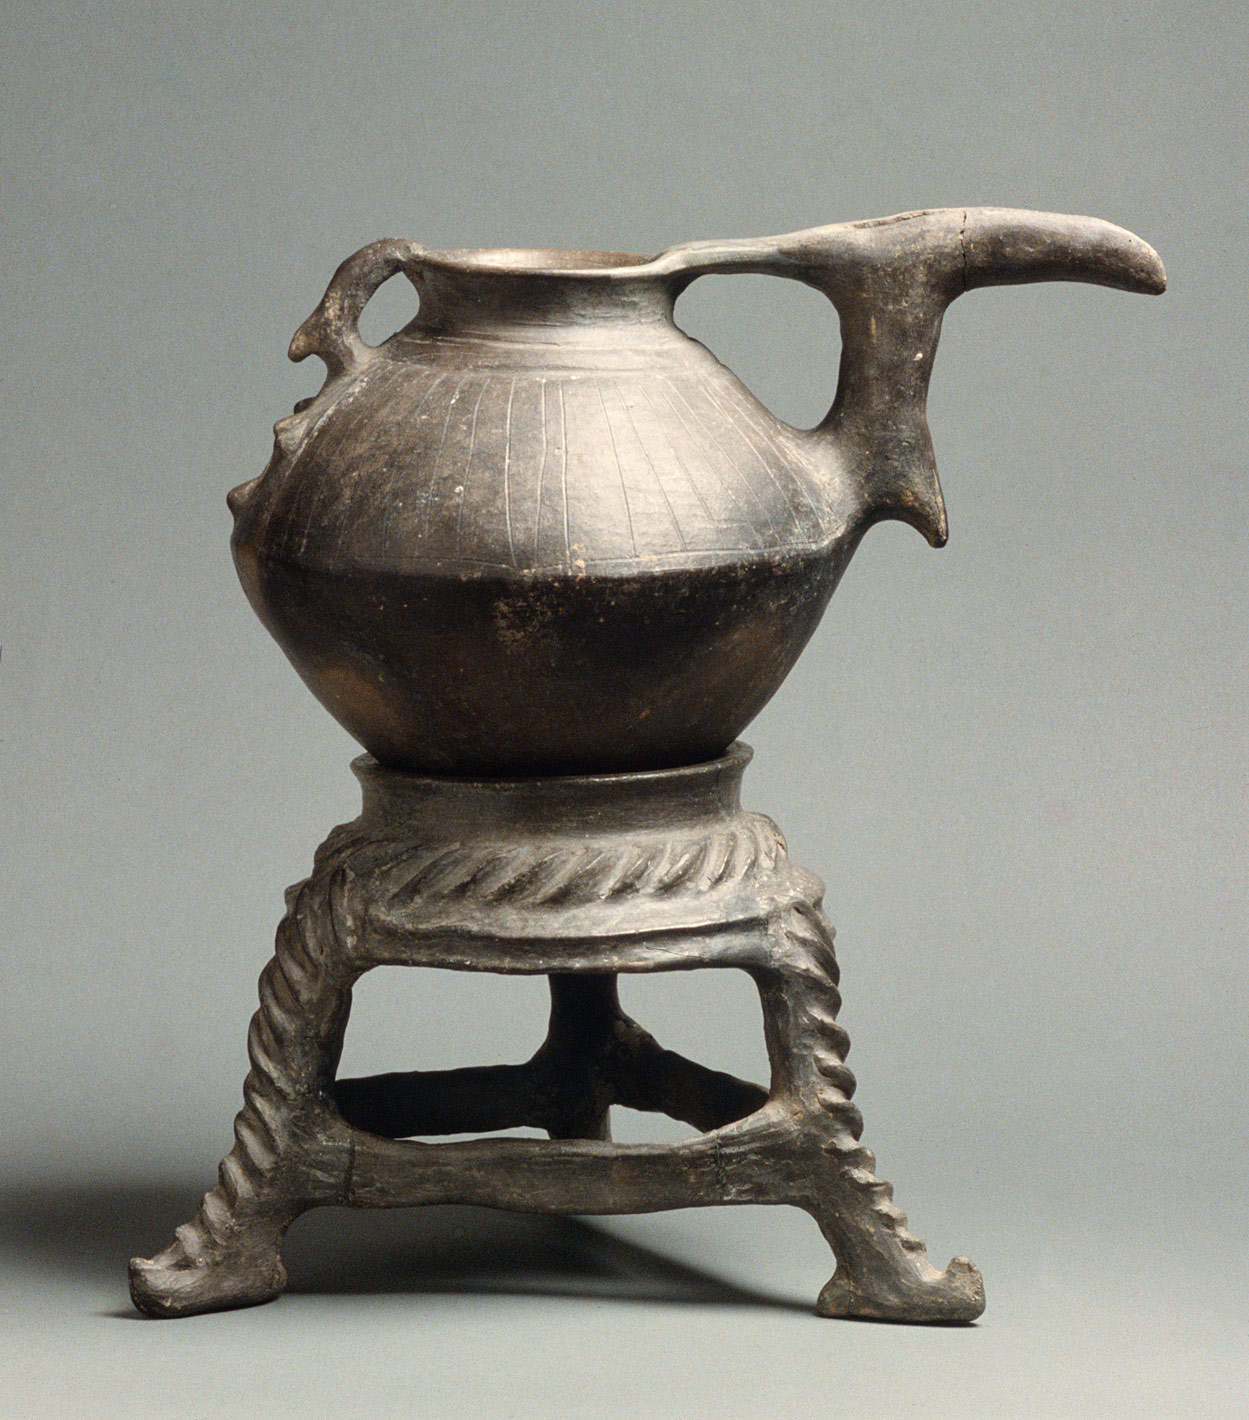 Spouted jar and stand